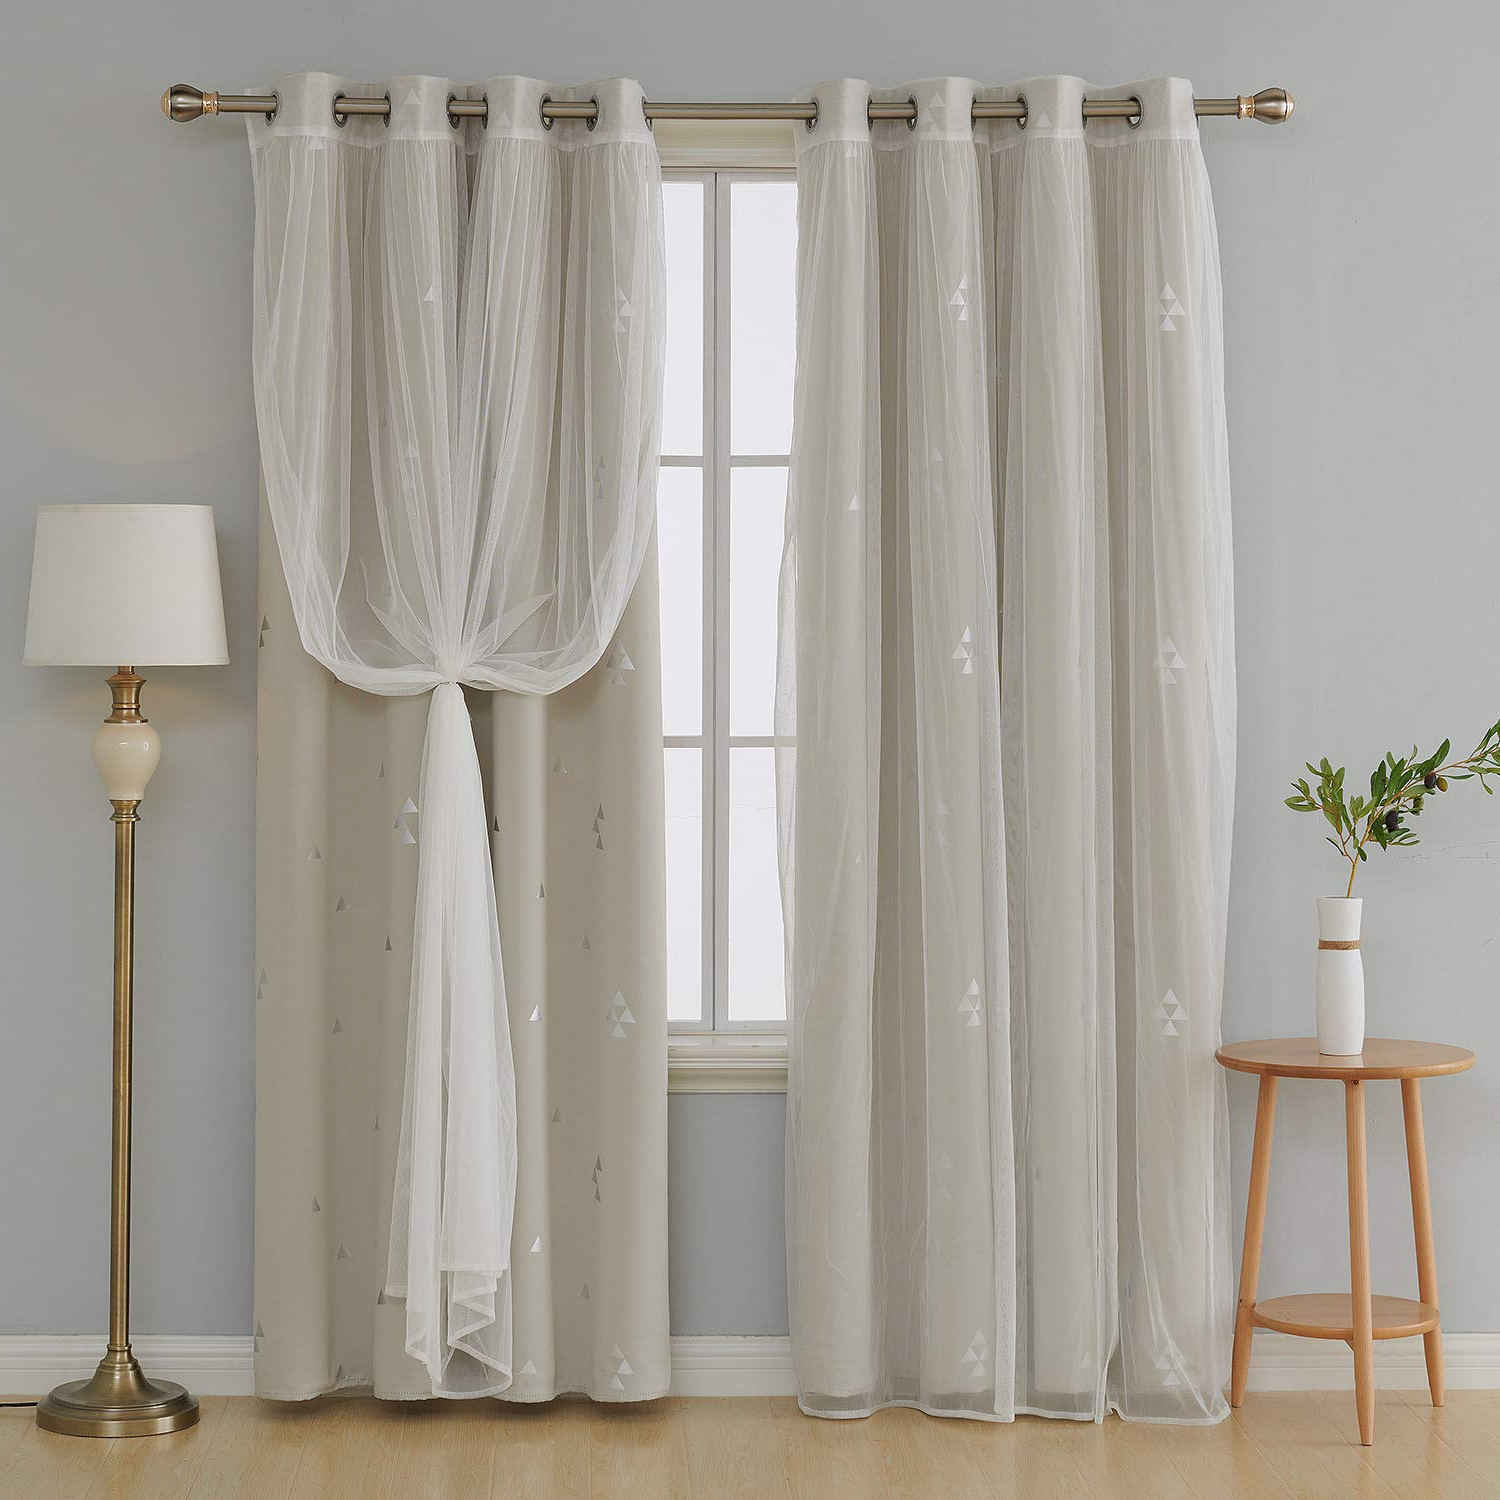 2020 Deconovo Mix And Match Curtain Triangle Printed Blackout Curtains Panels Cream And Tulle Lace White Sheer Curtains For Nursery With Grommet Top 4 Pertaining To Mix And Match Blackout Blackout Curtains Panel Sets (View 7 of 20)